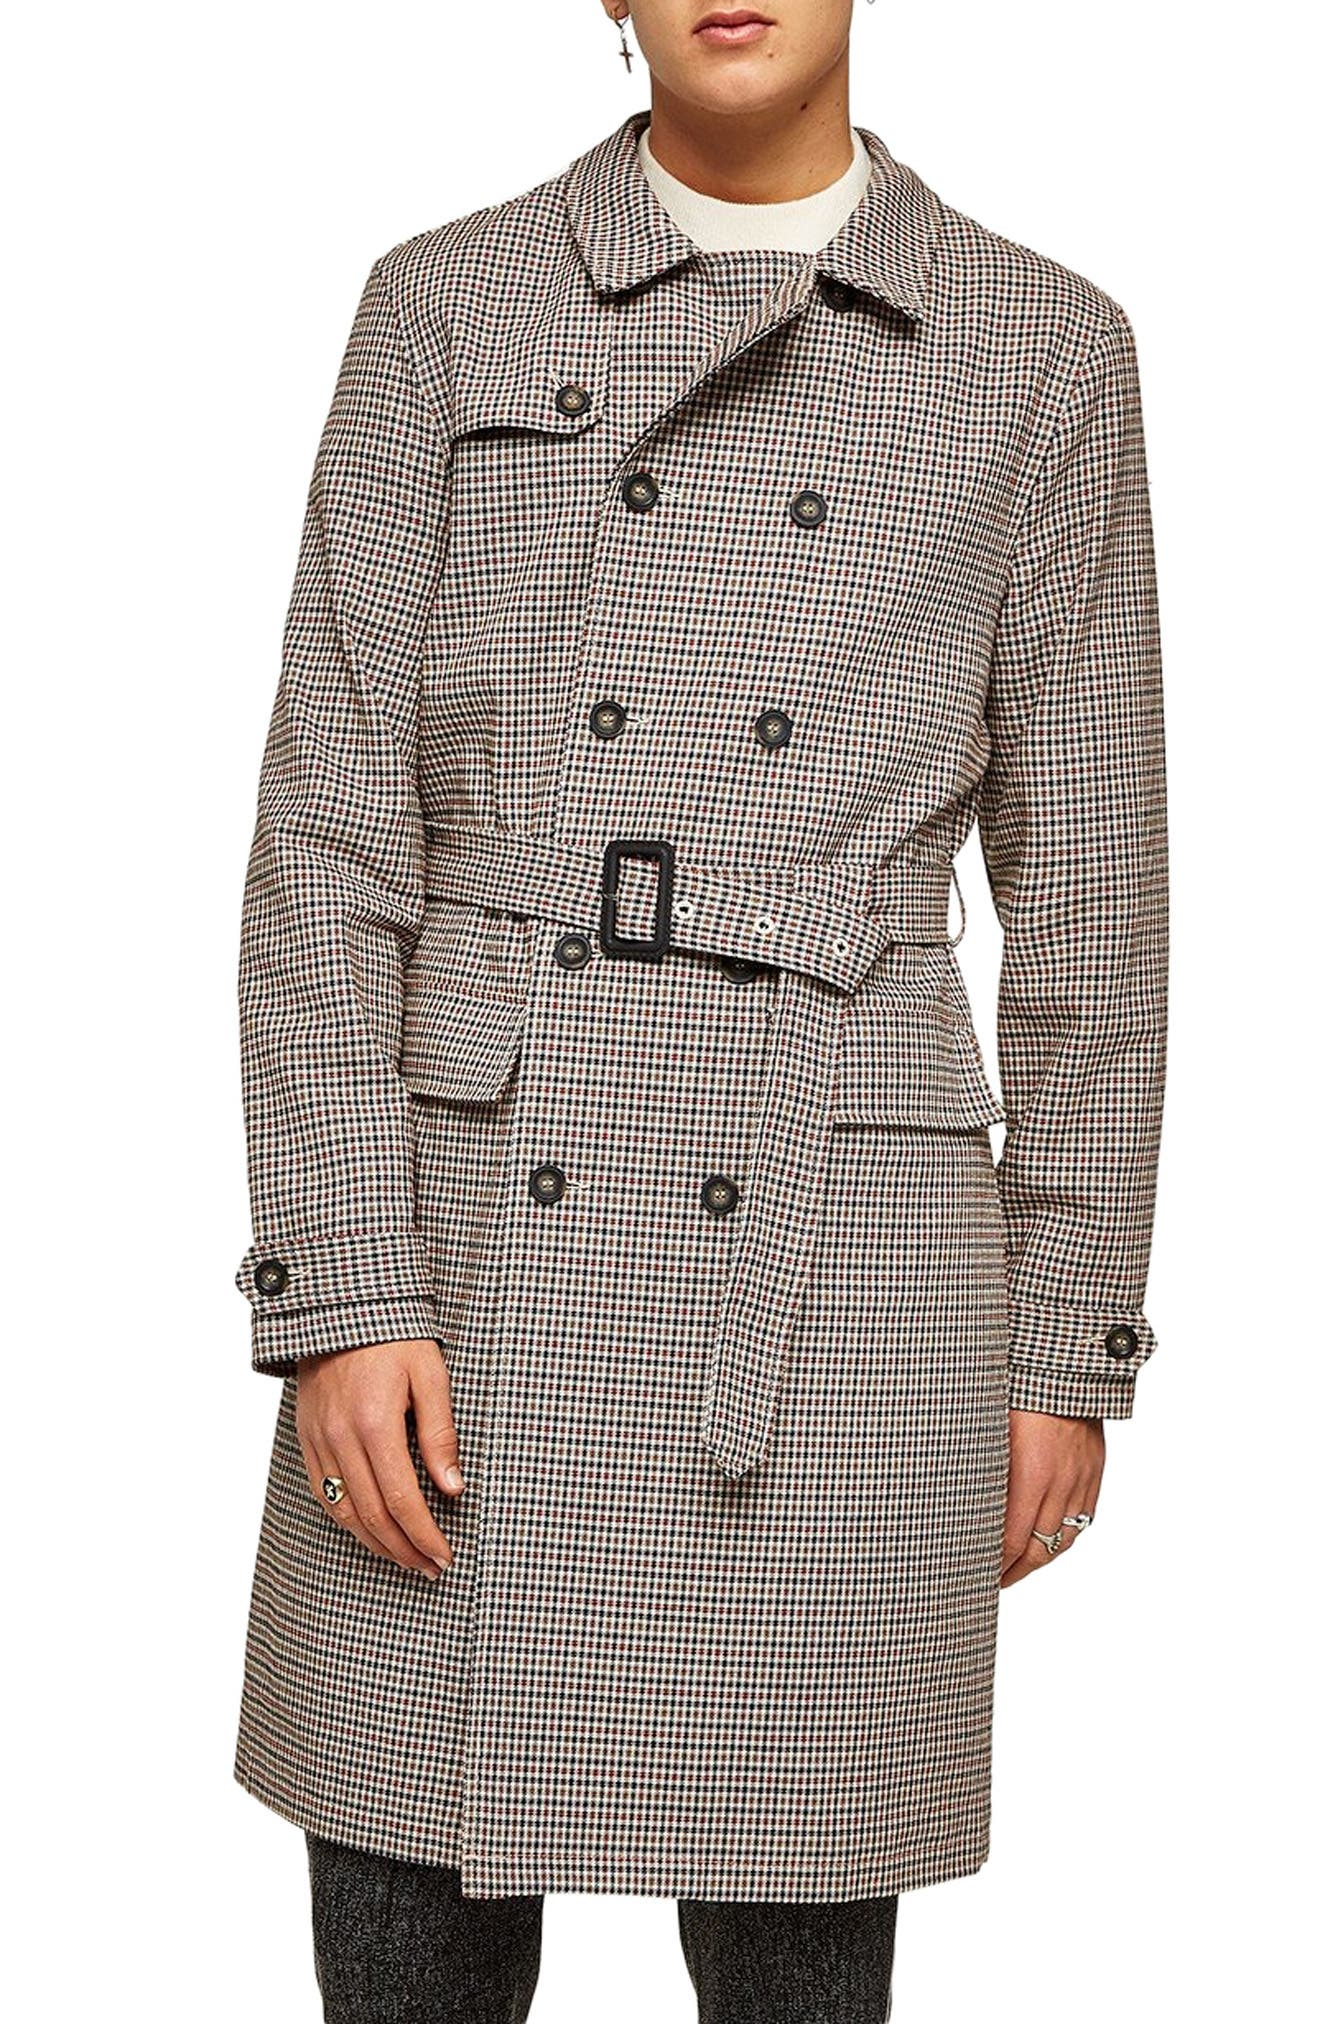 Houndstooth Trench Coat,                         Main,                         color, BROWN MULTI